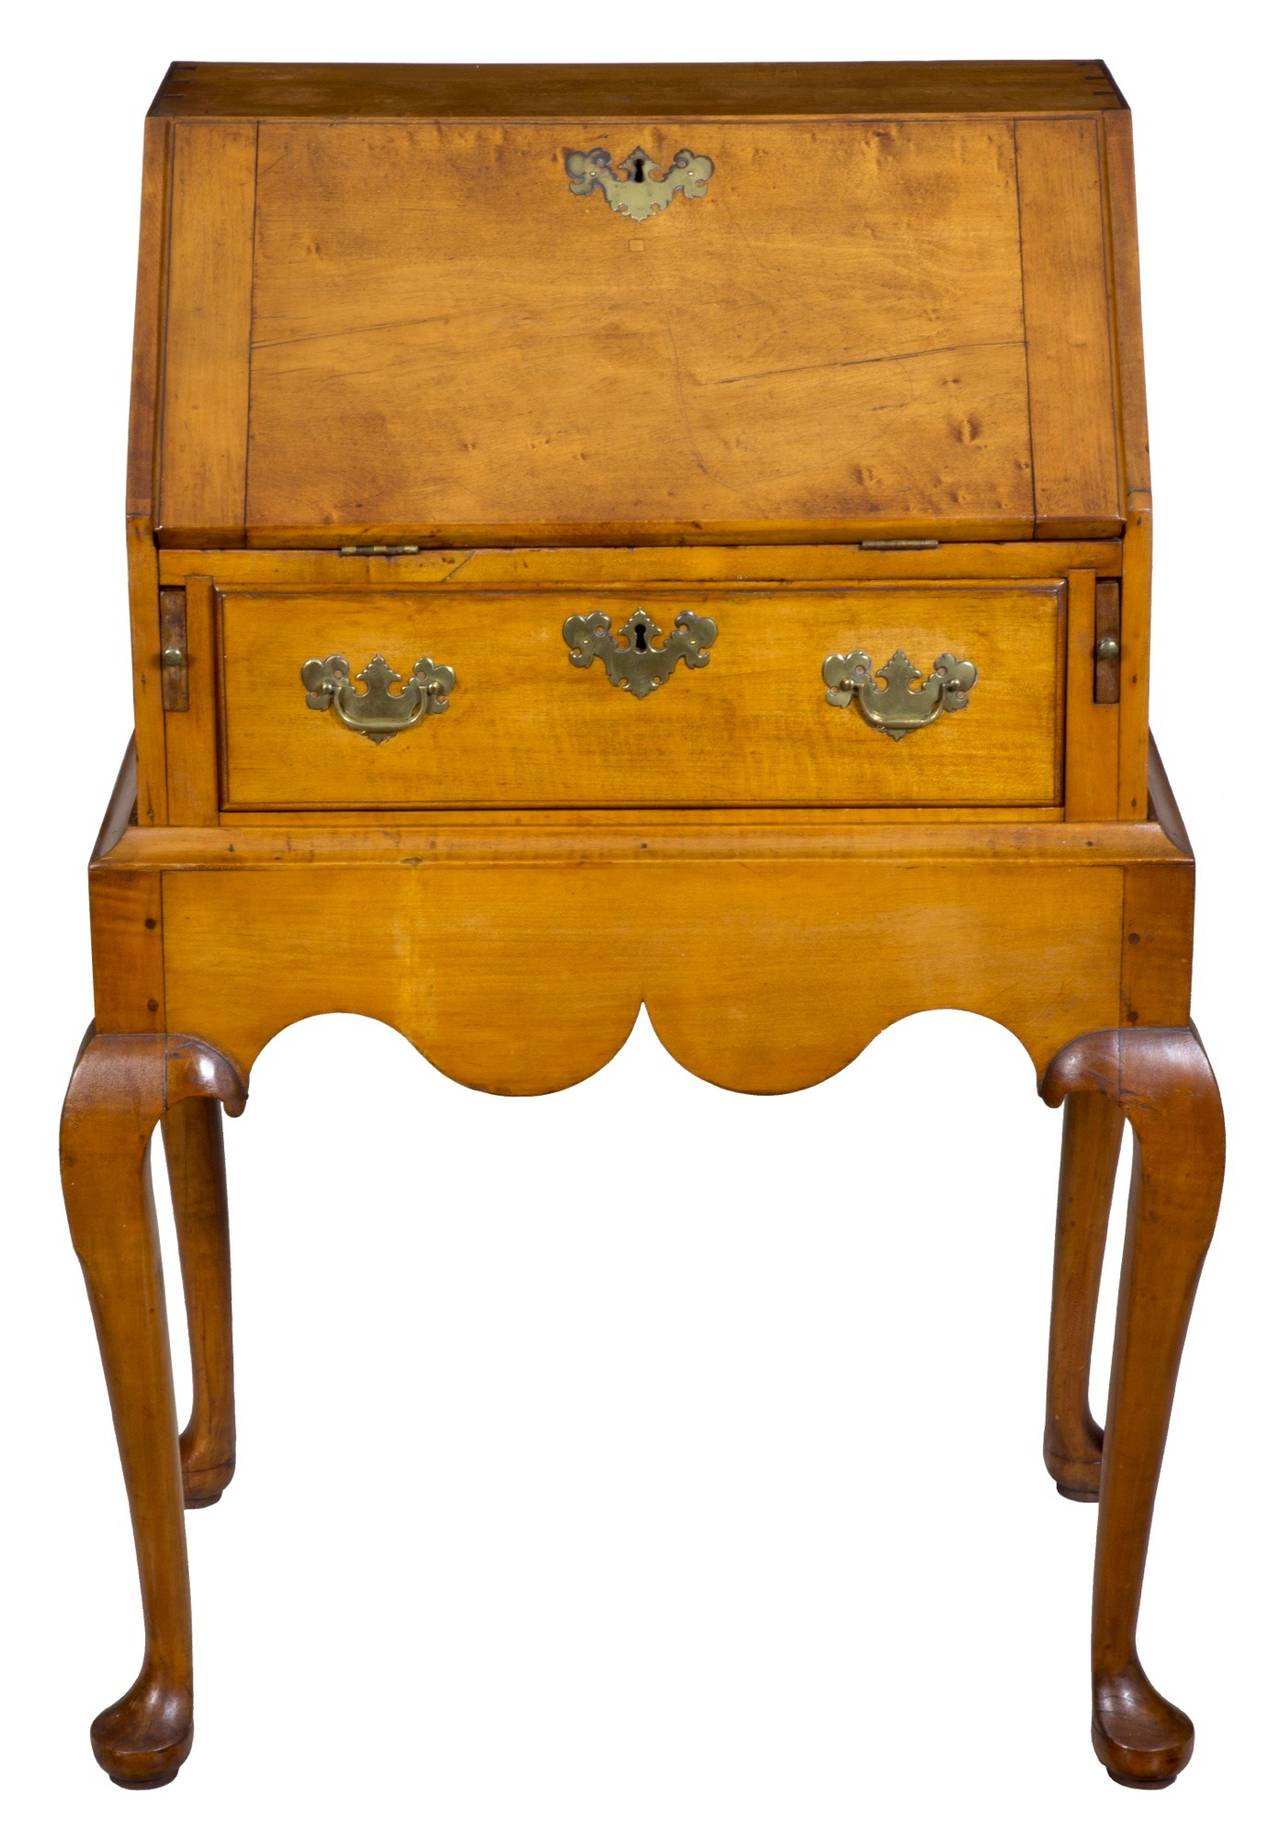 Whether A Lady S Desk Or Child What It Is An Early Diminutive